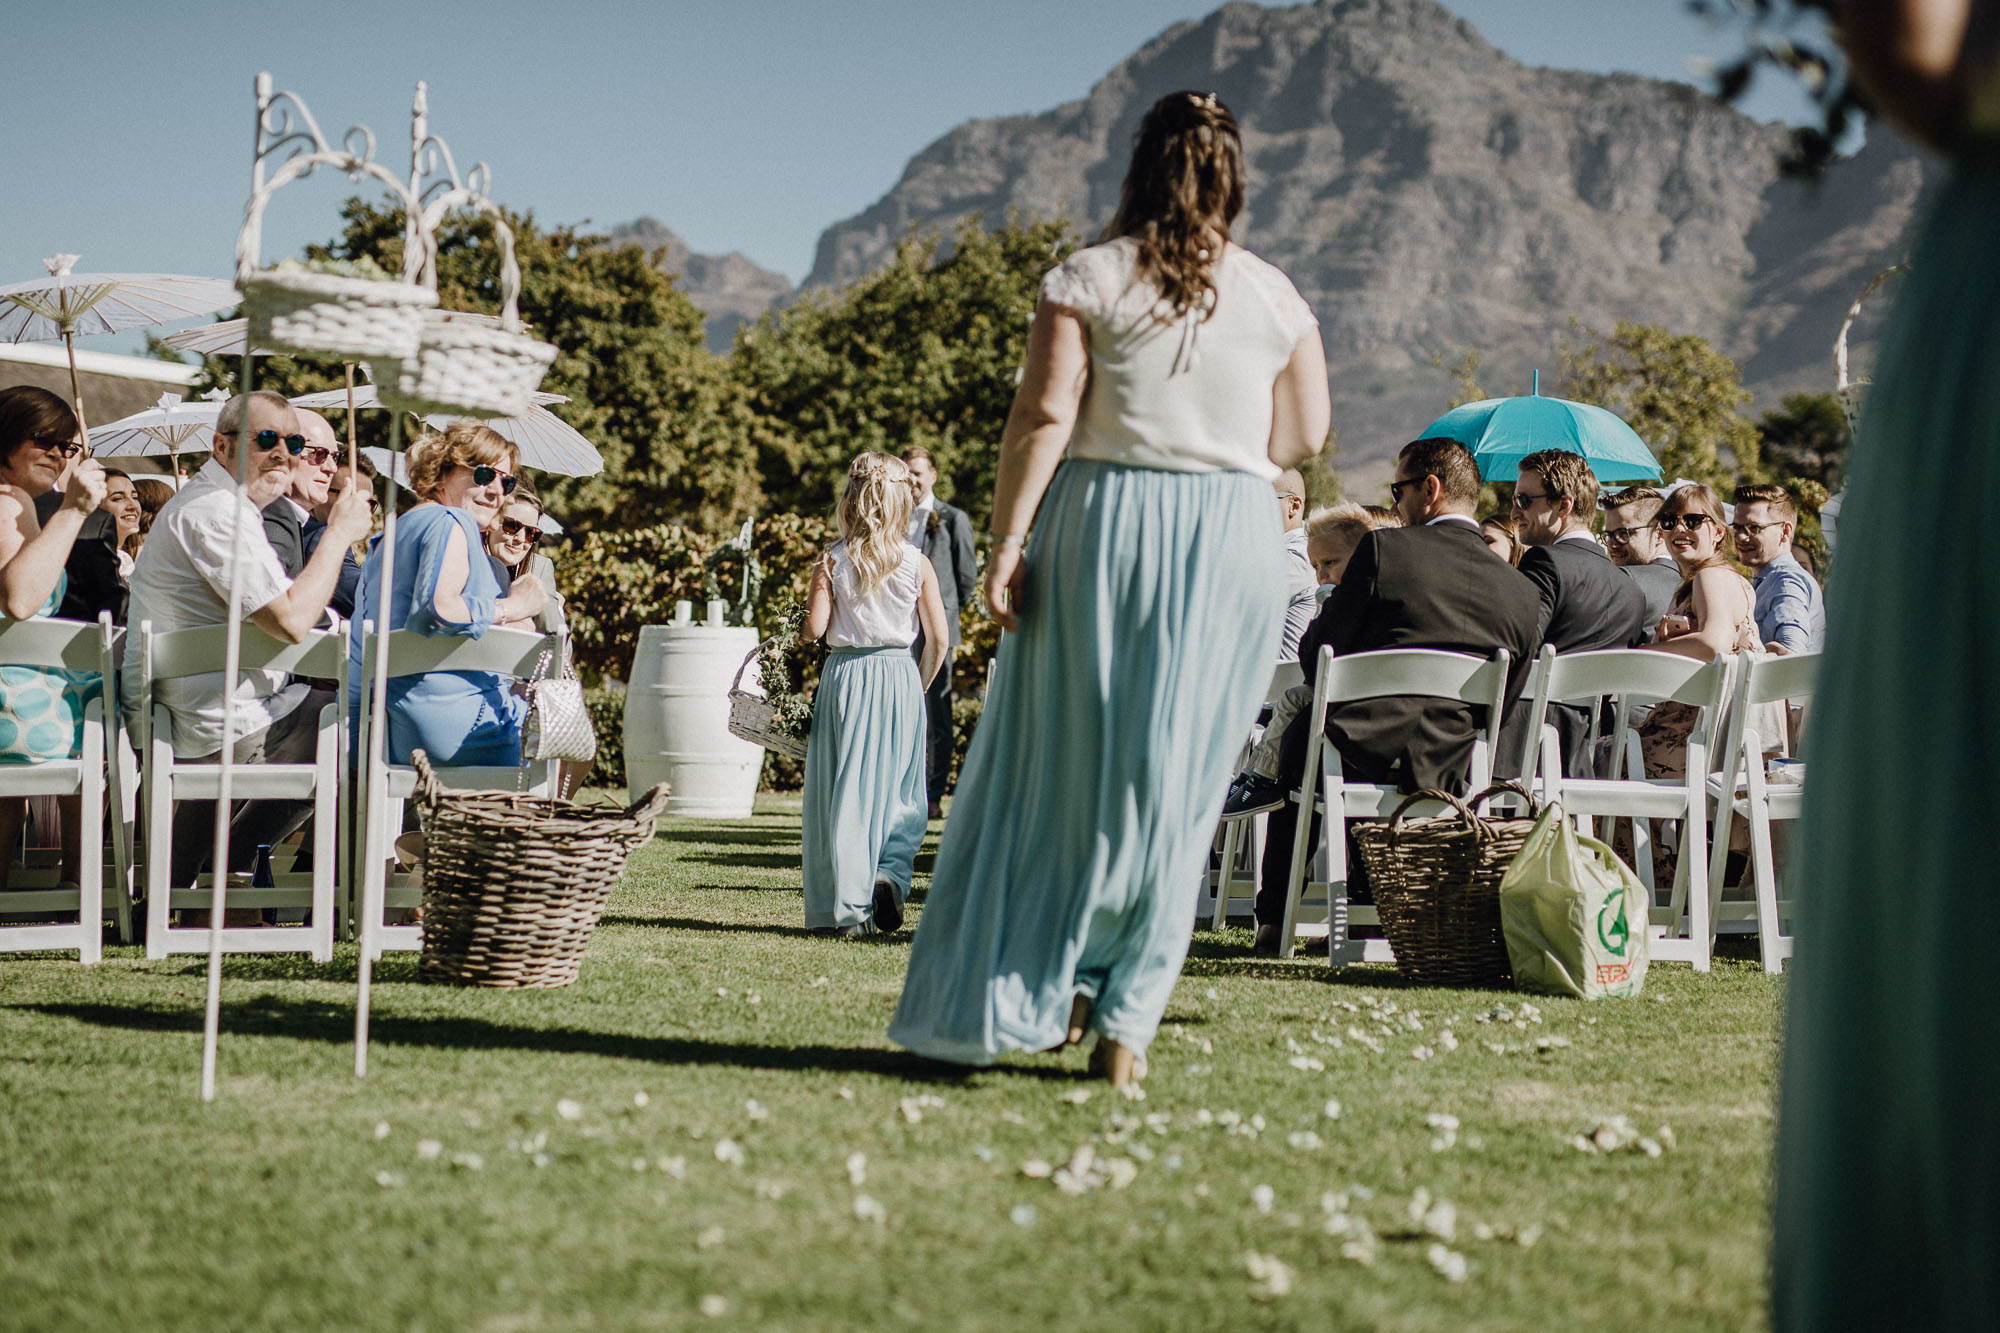 raissa simon photography destination wedding capetown vrede en lust wine estate 053 - Nienke + Tim